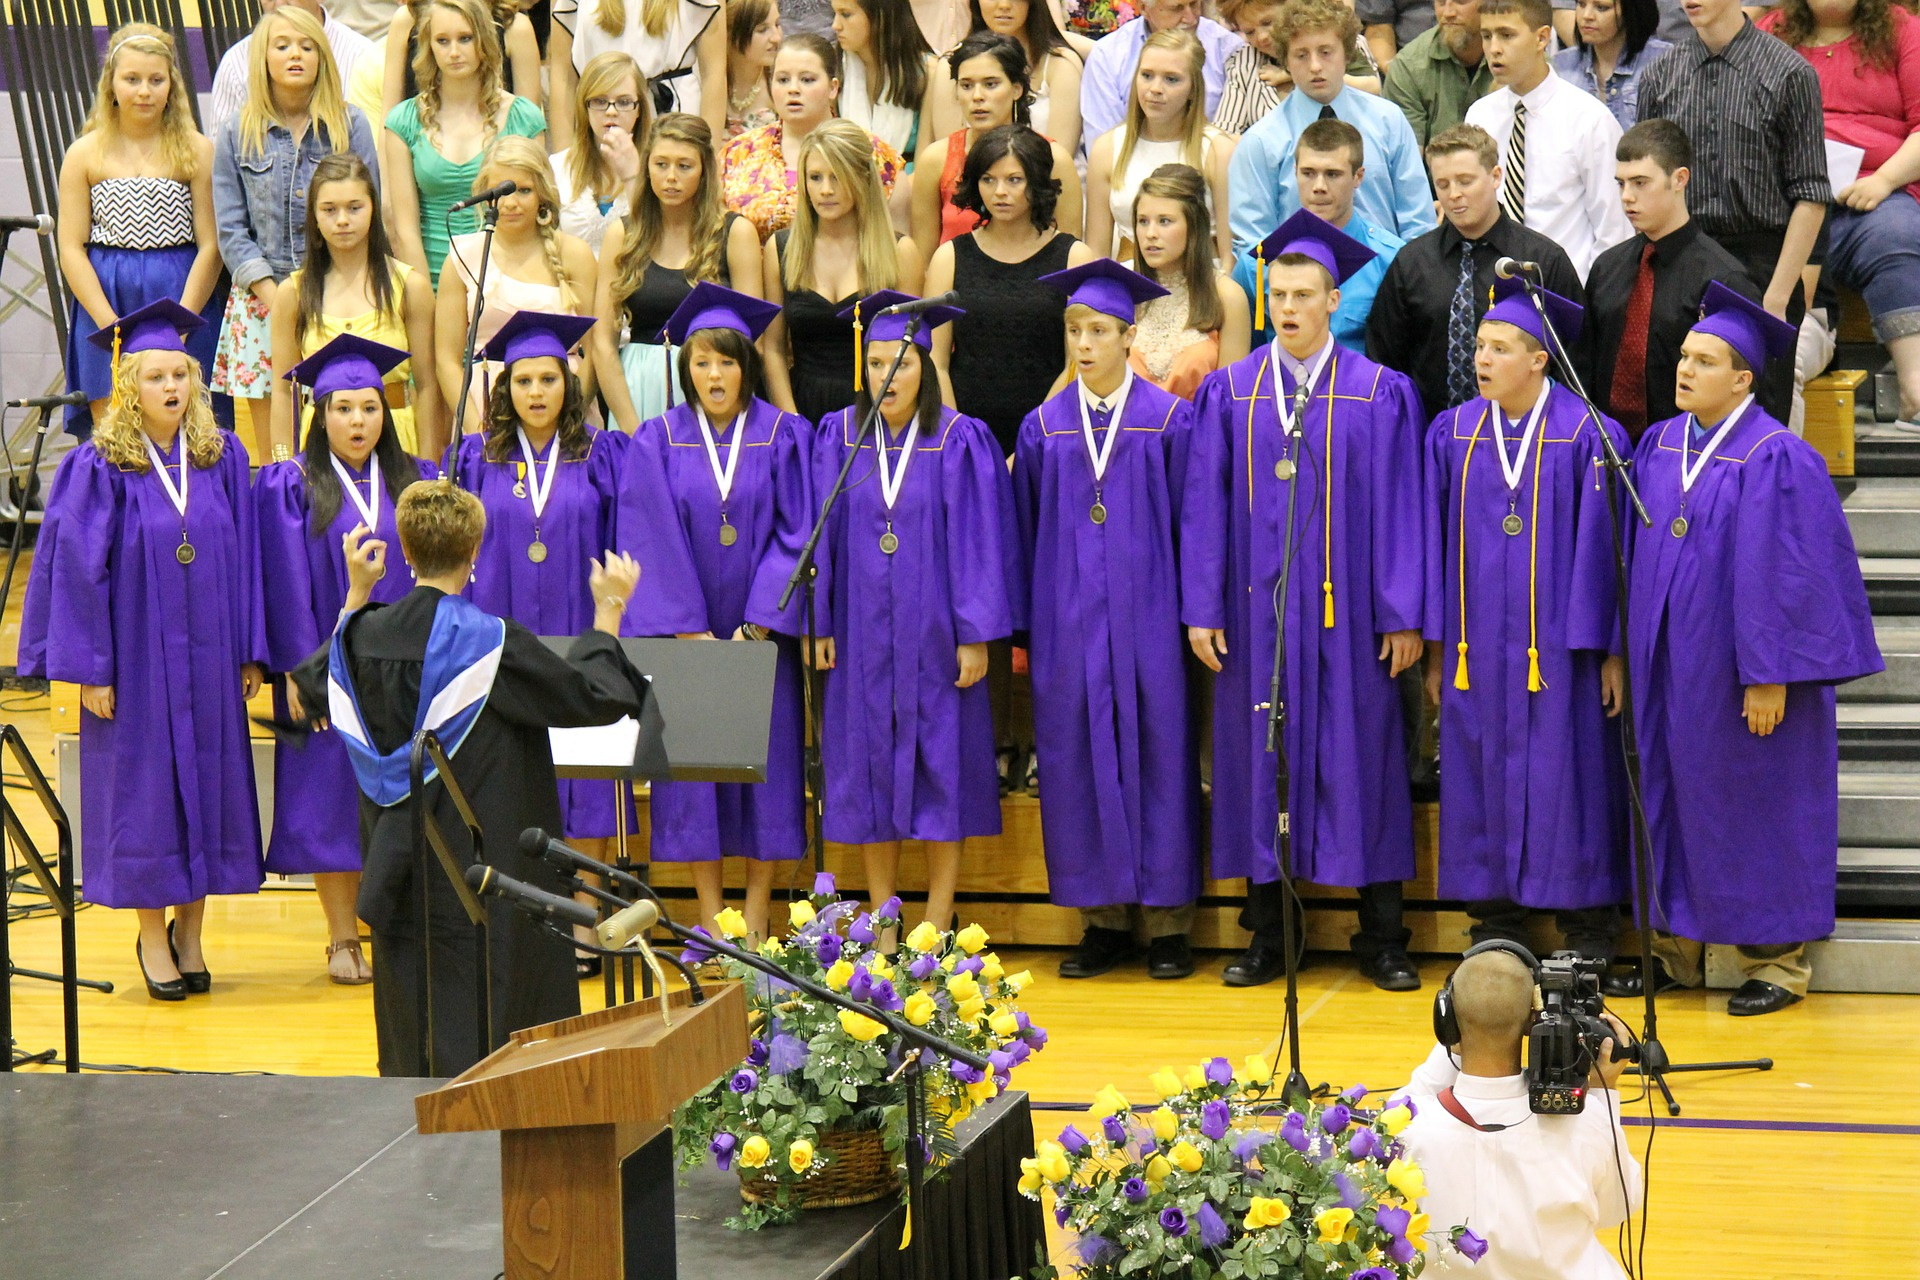 High School Graduation and New-found Independence